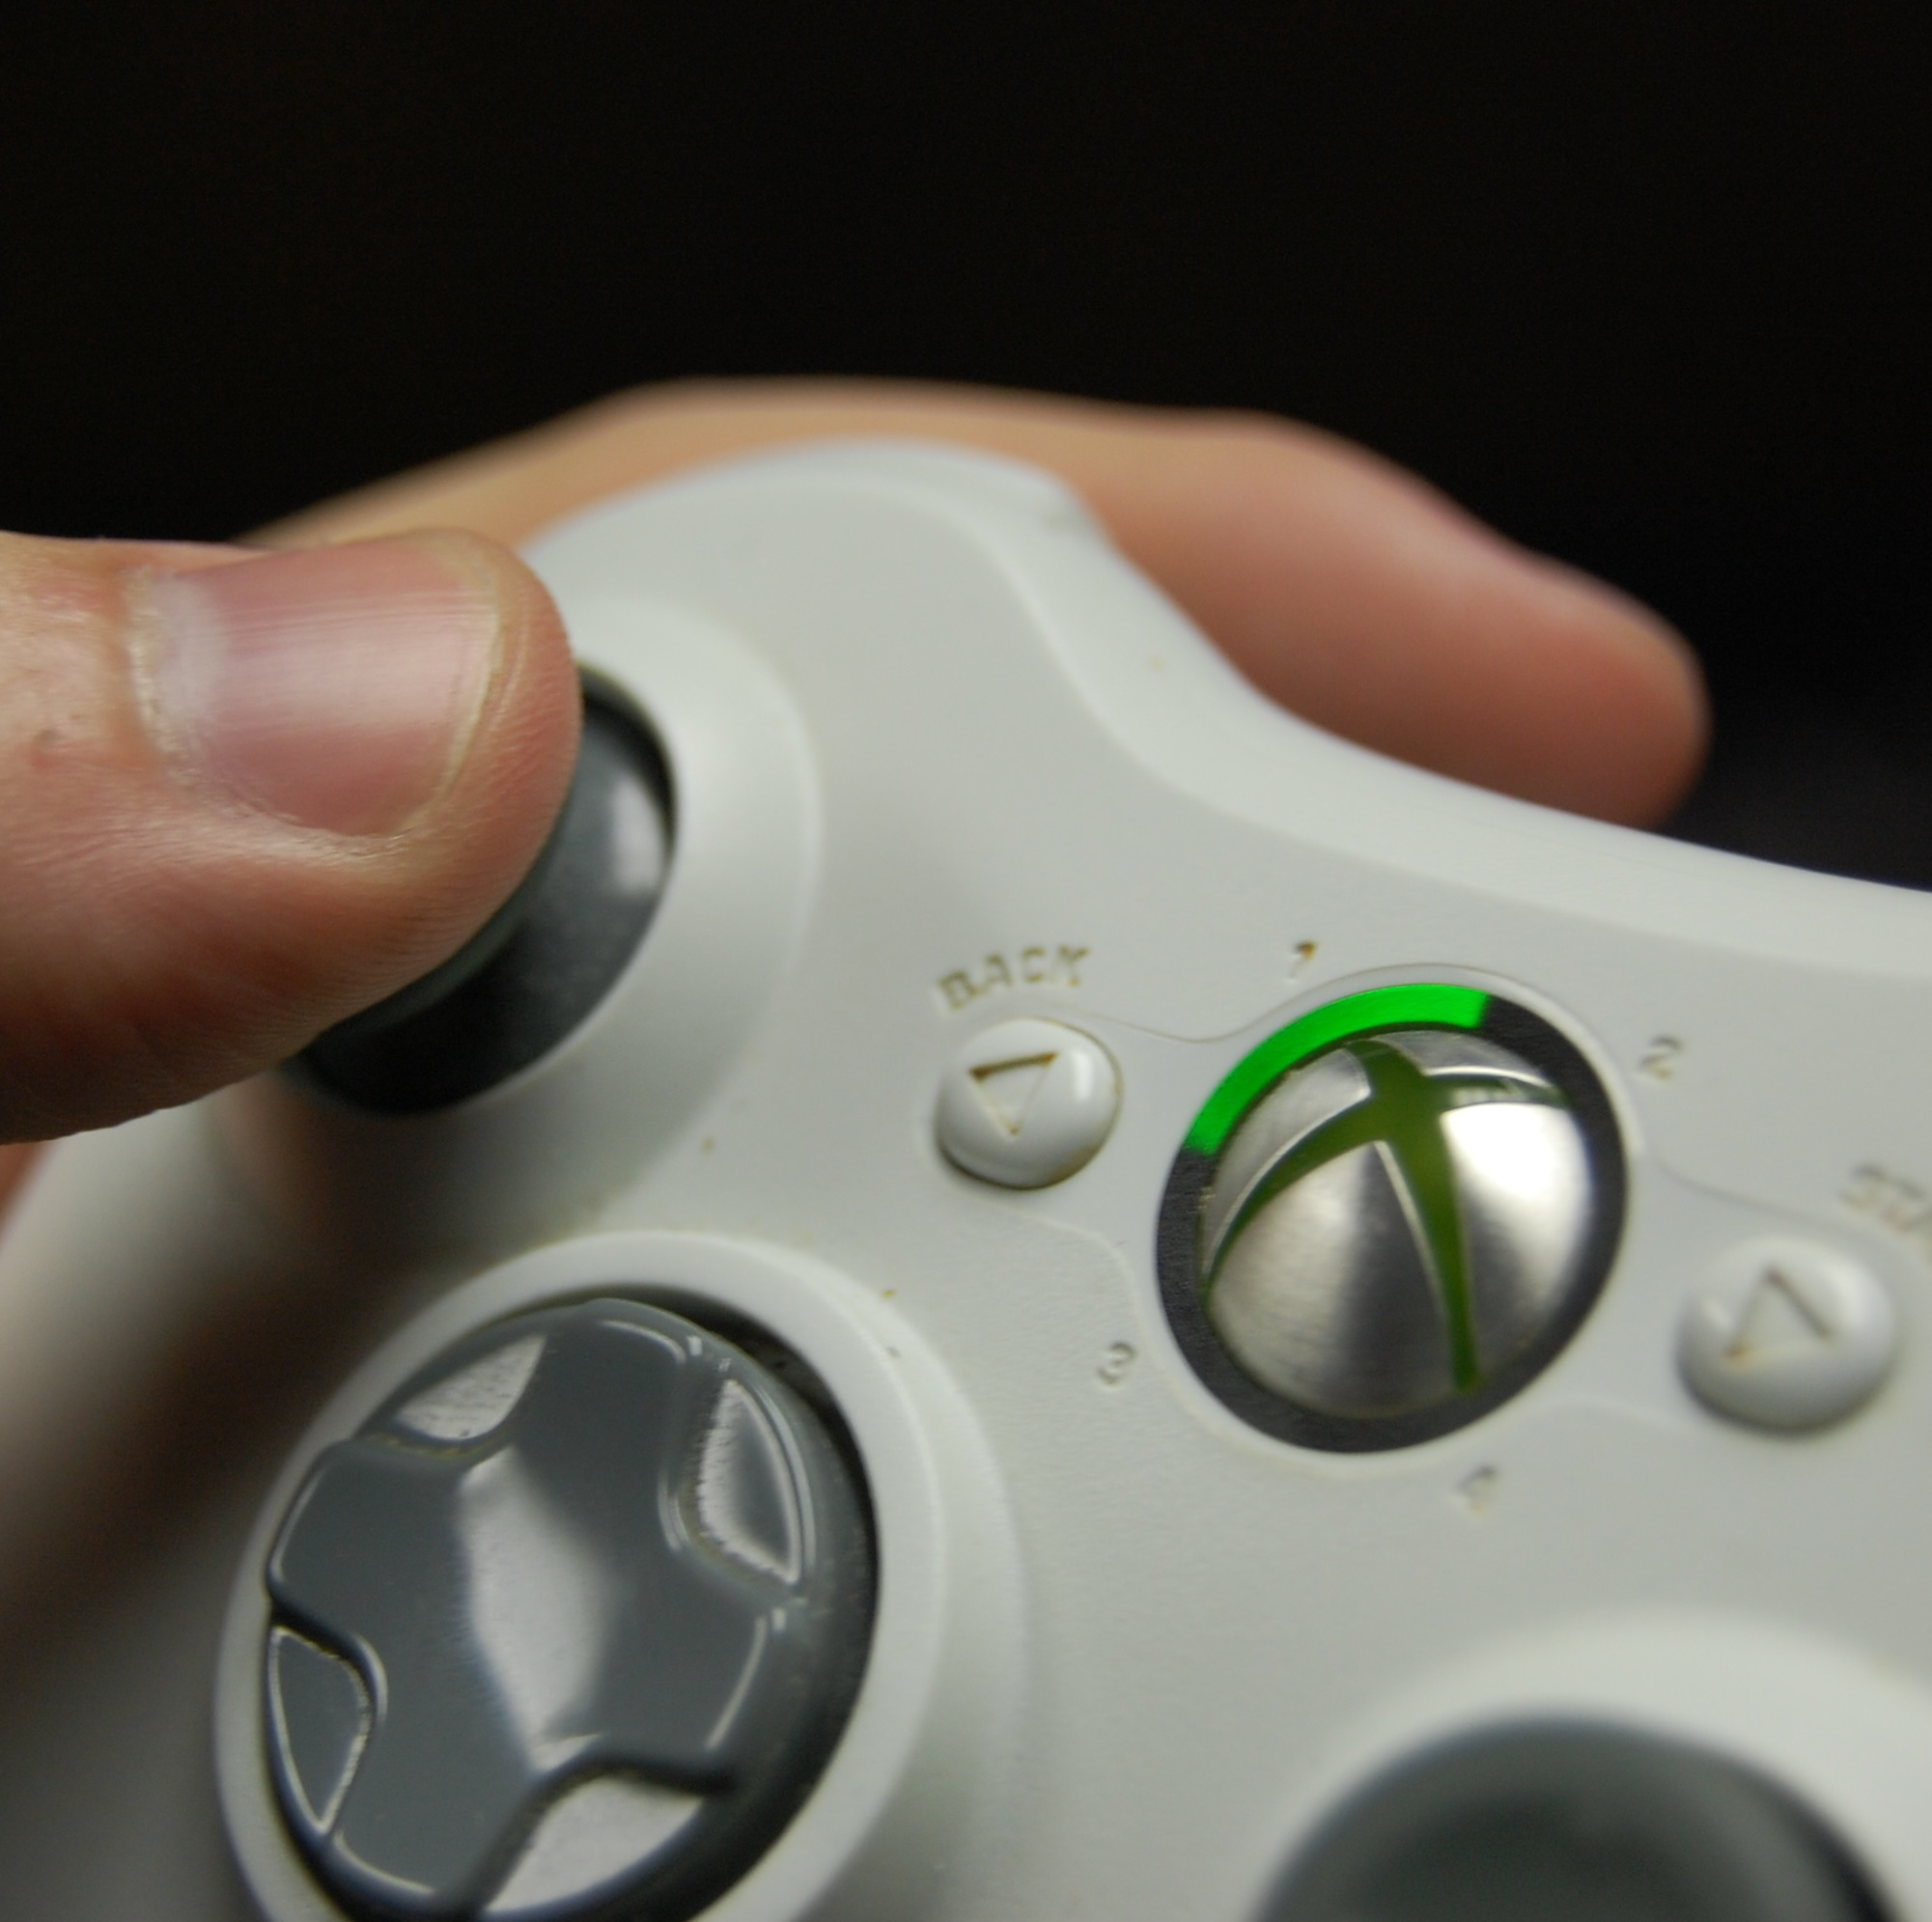 Is There a Link Between Gaming and Diabetes?